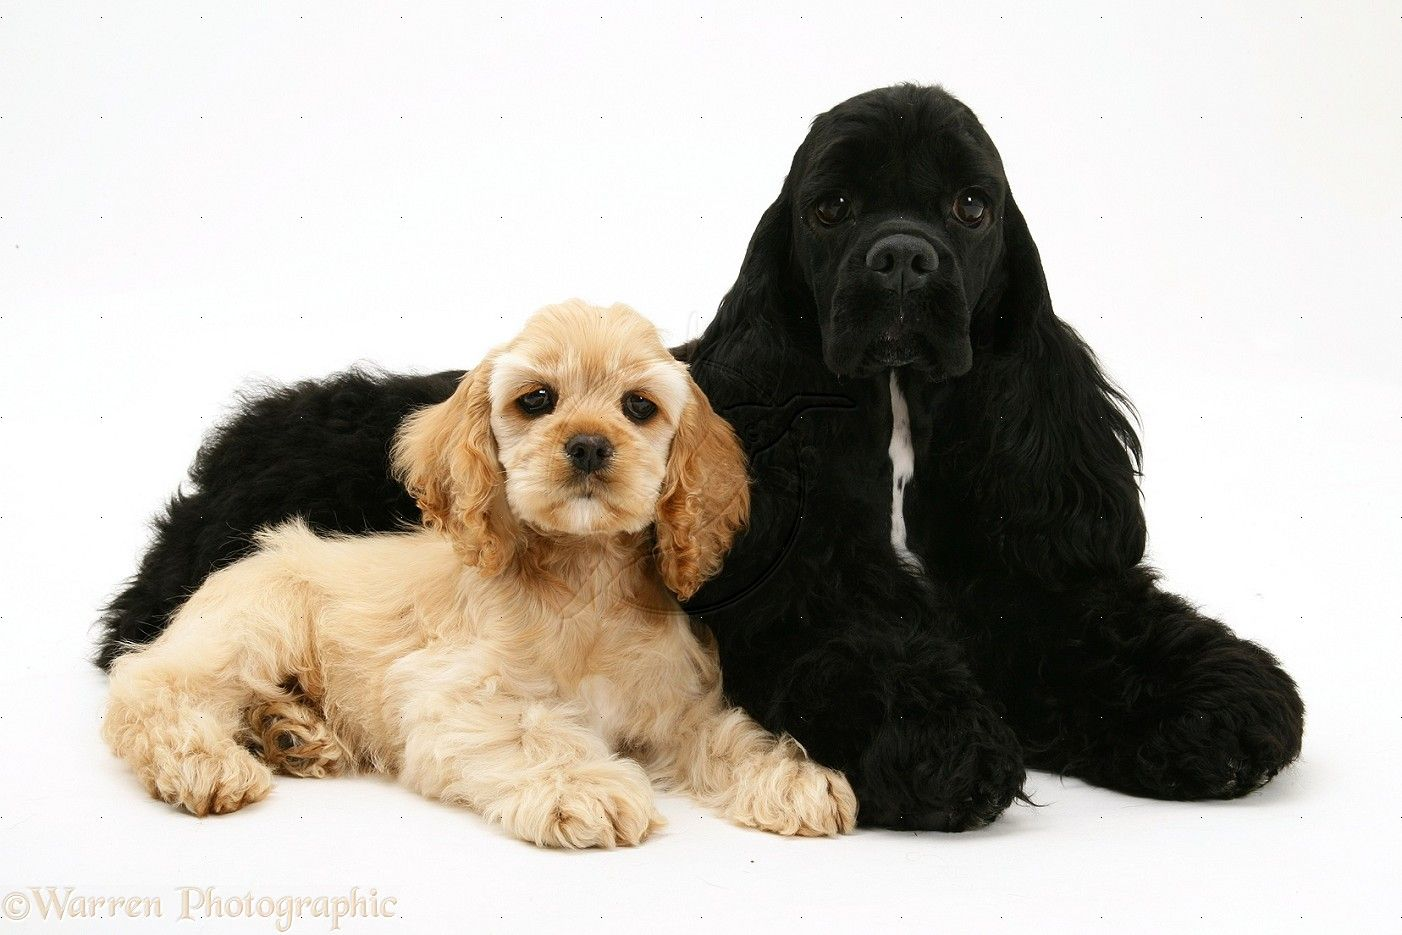 American Cocker Spaniel American Cocker Spaniel Cocker Spaniel Dogs And Puppies